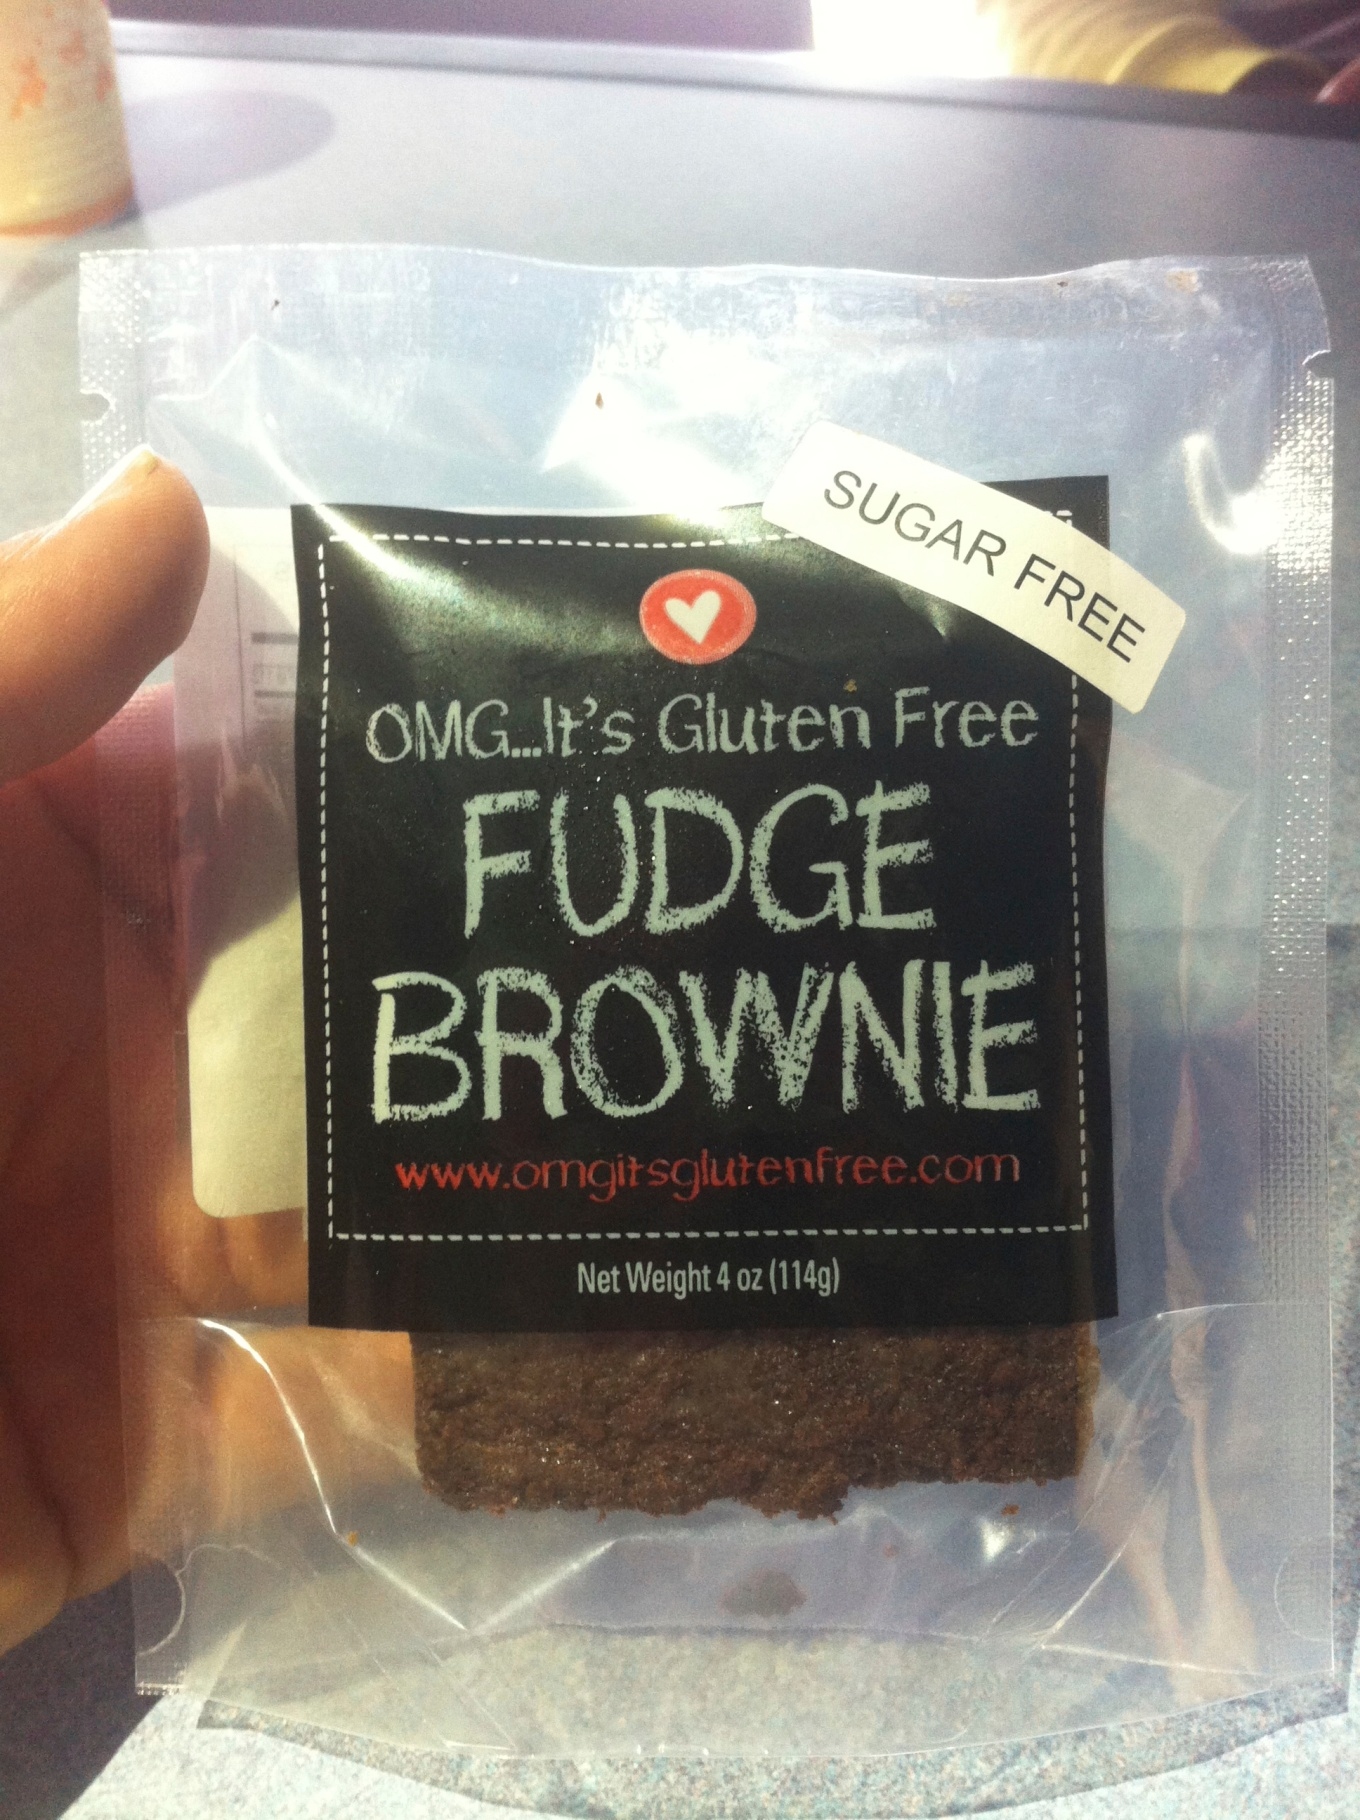 Sugar Free Fudge Brownie